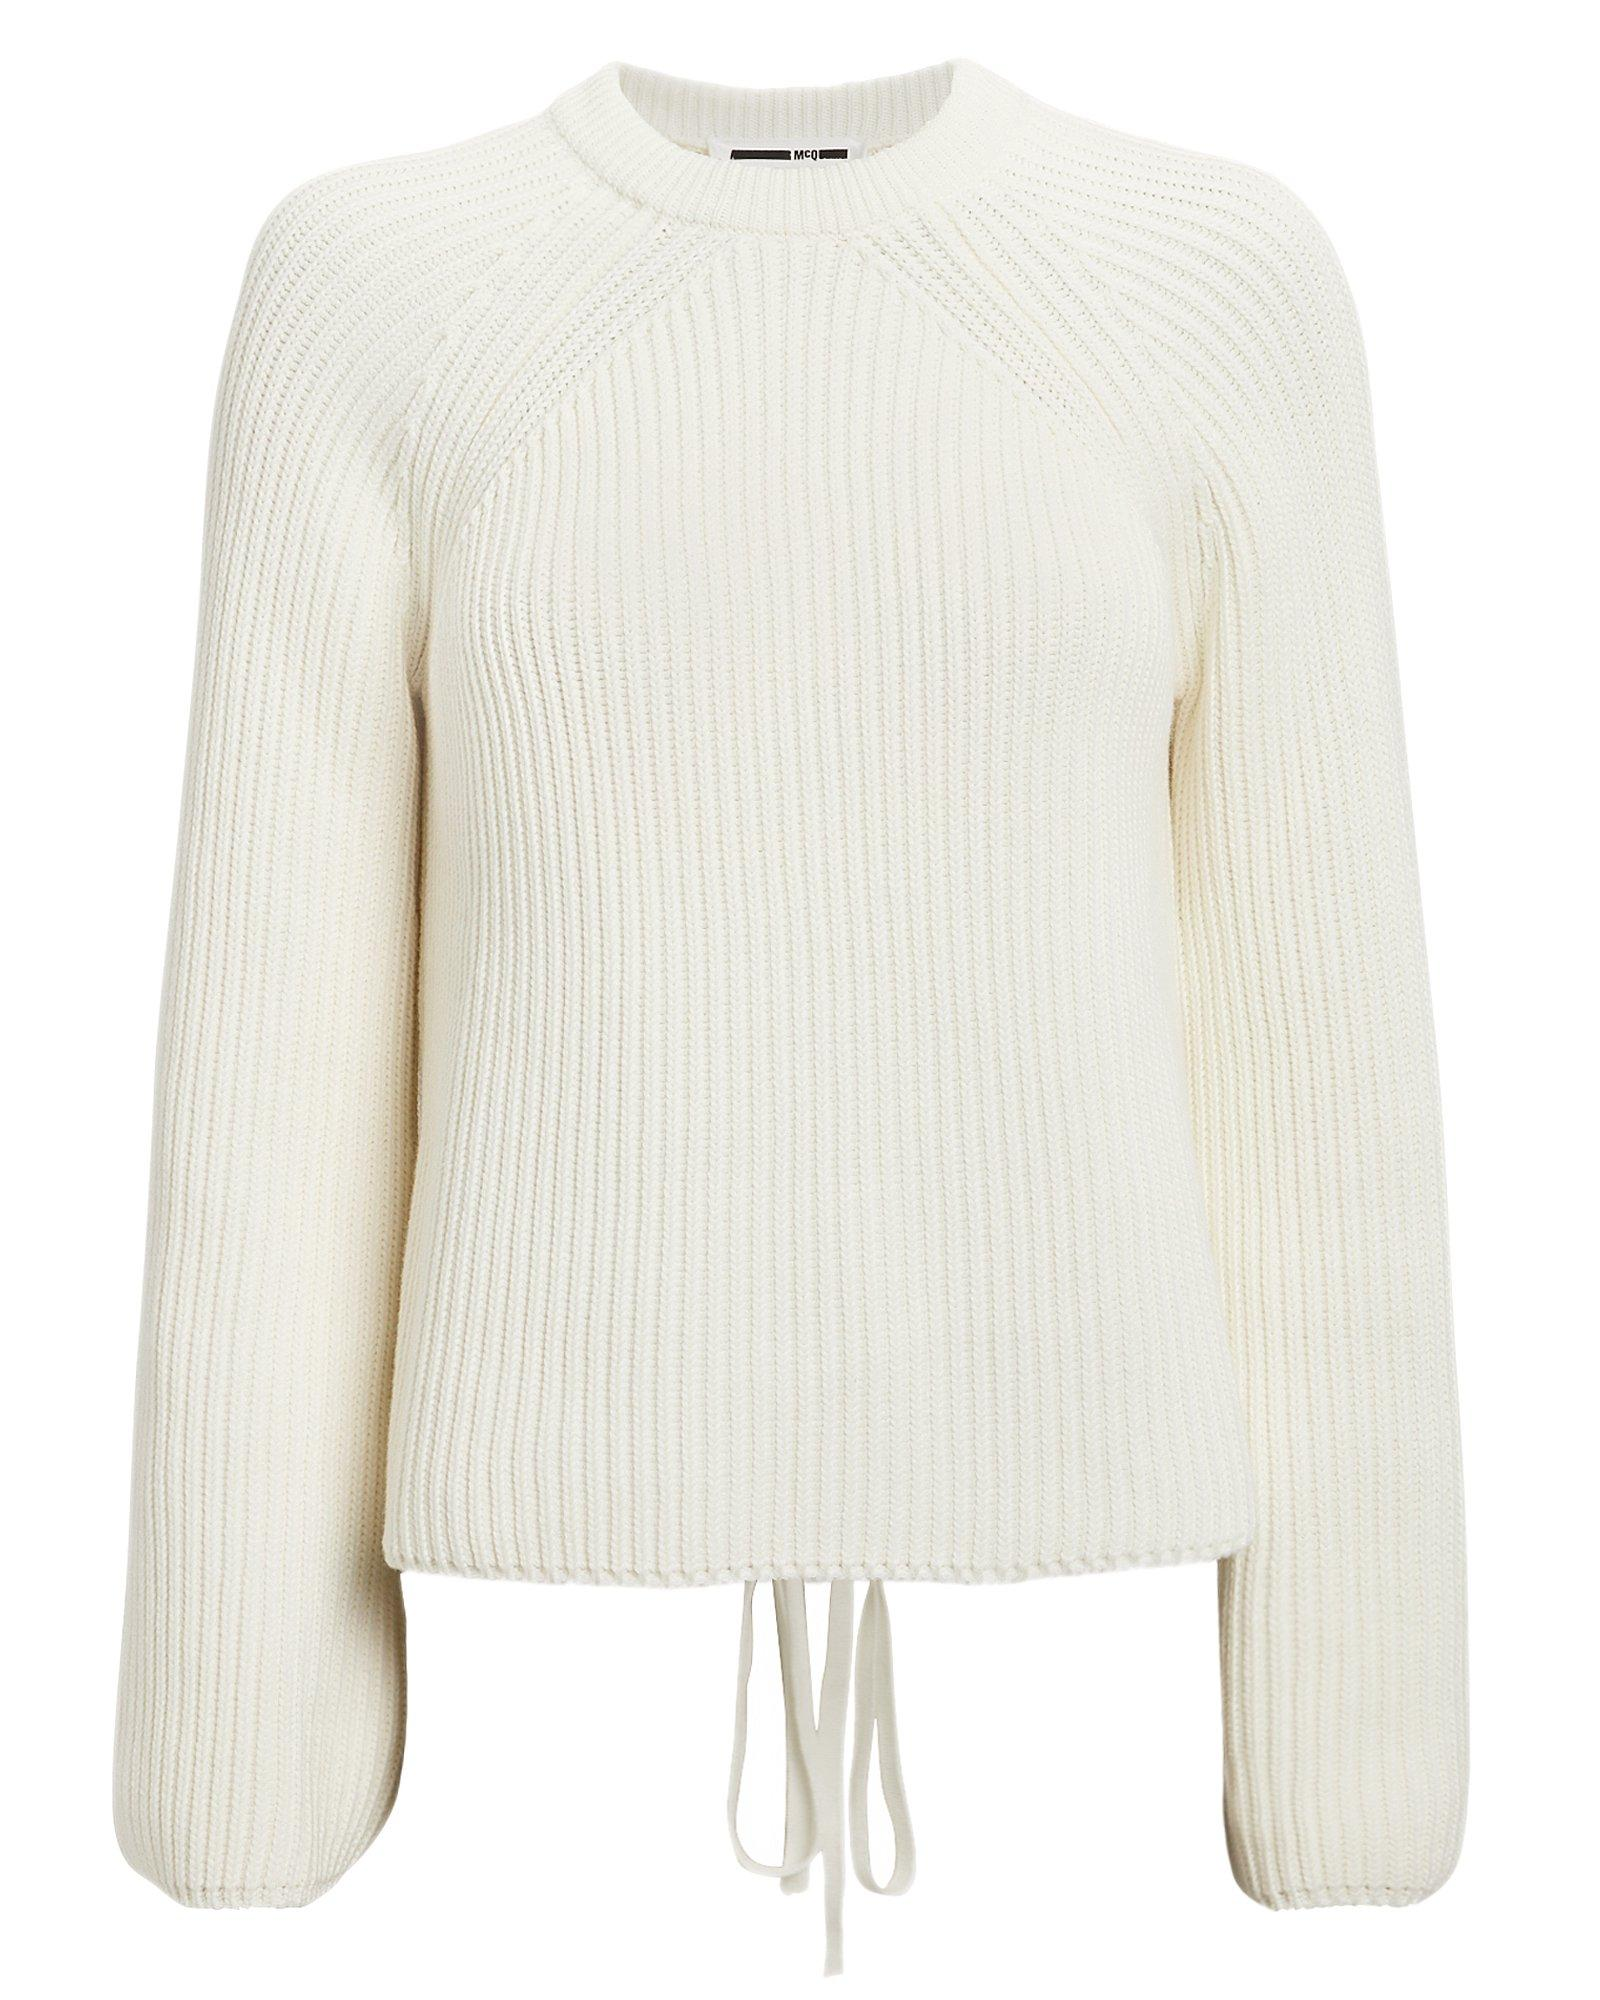 9ebef7f48e McQ Alexander McQueen - White Ivory Lace-up Knit Sweater - Lyst. View  fullscreen